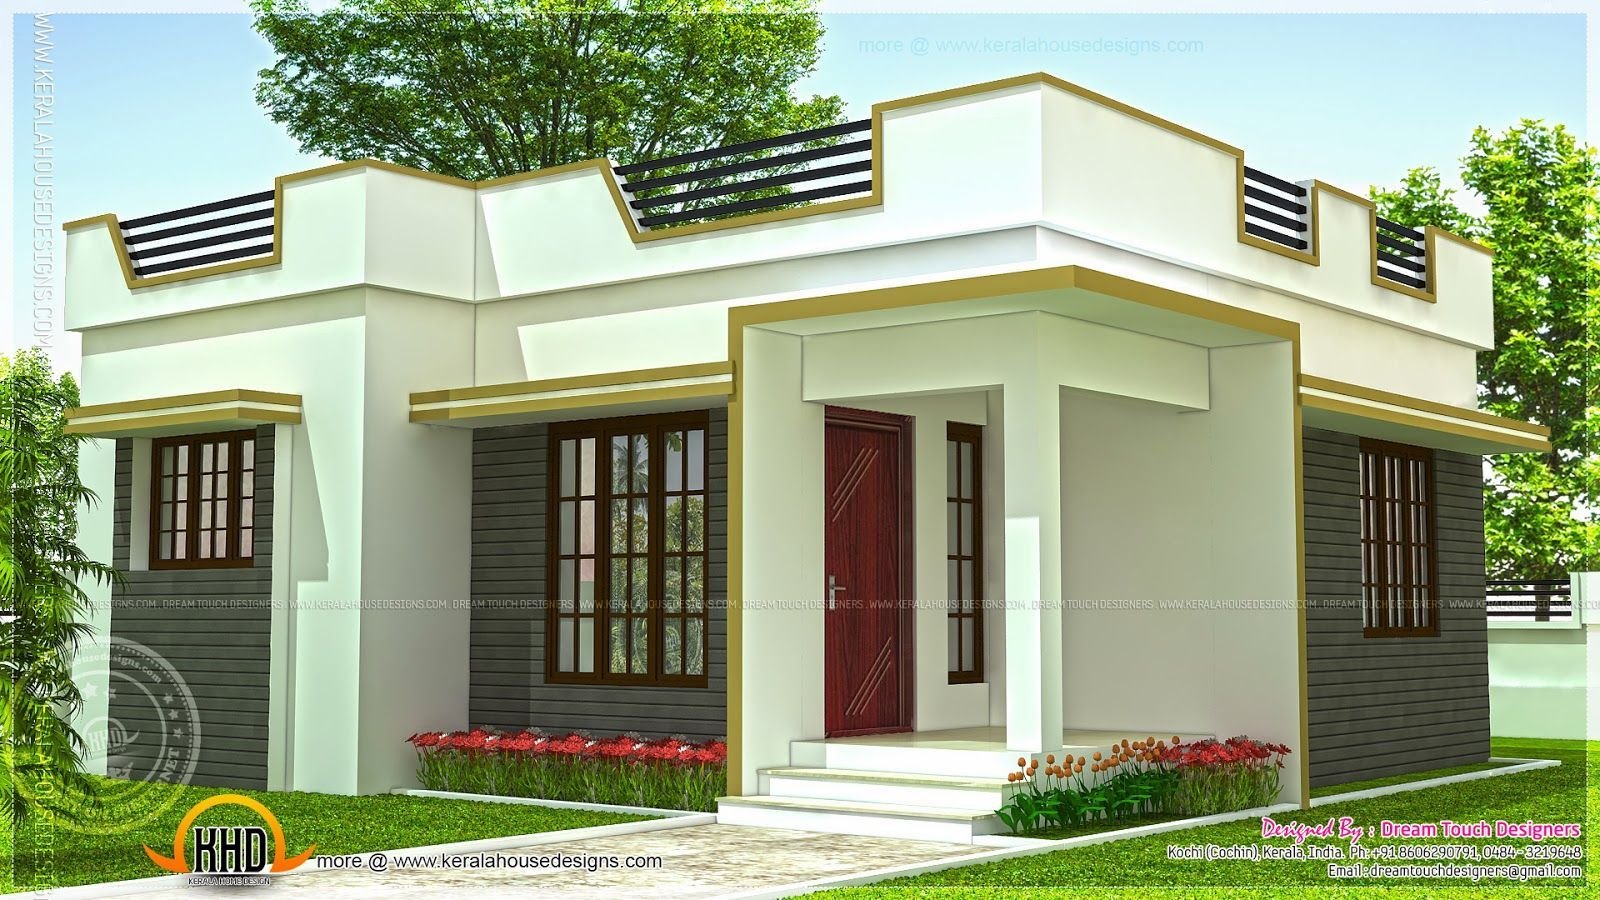 Best Small House Design Tricks Tiny House Nation Episodes Thetinyhouse House Roof Design Small House Roof Design Small House Design Kerala